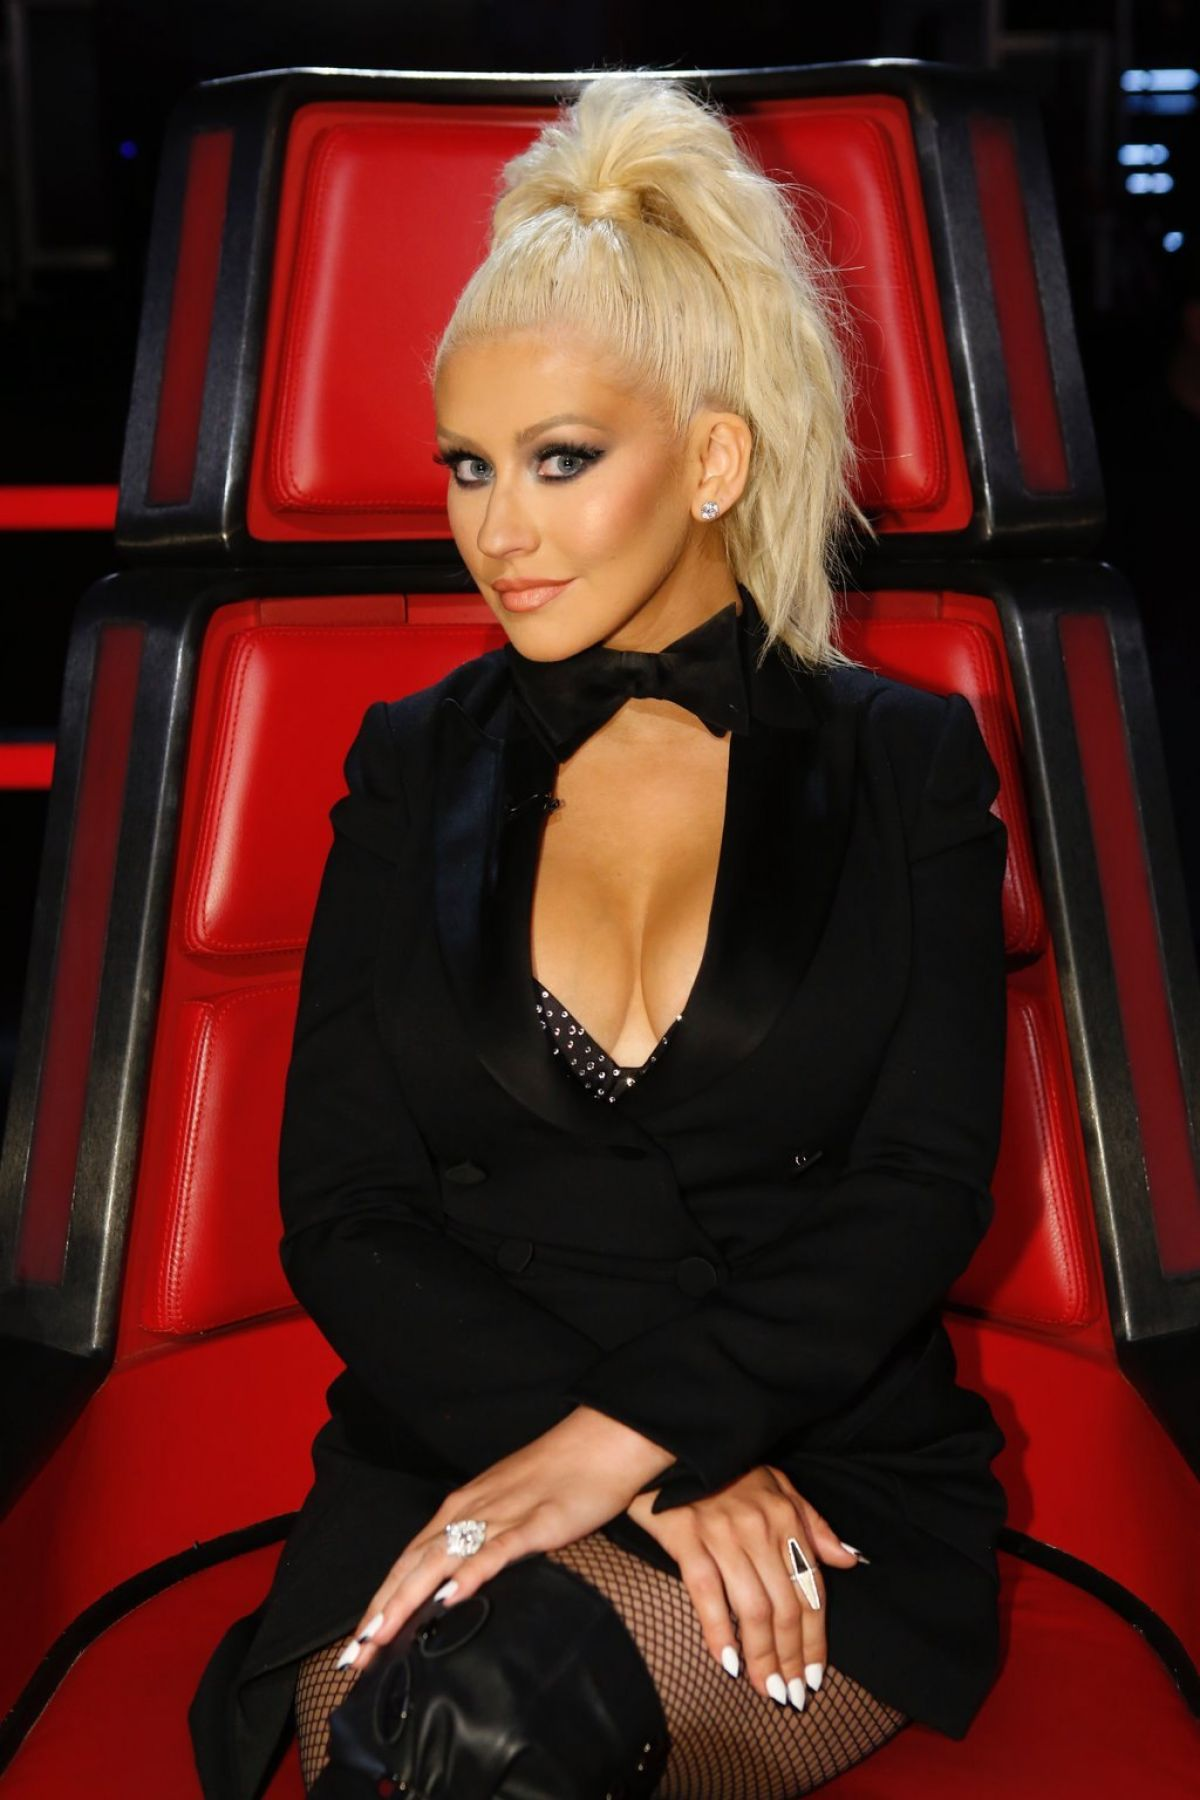 CHRISTINA AGUILERA - The Voice Season 10 Promos